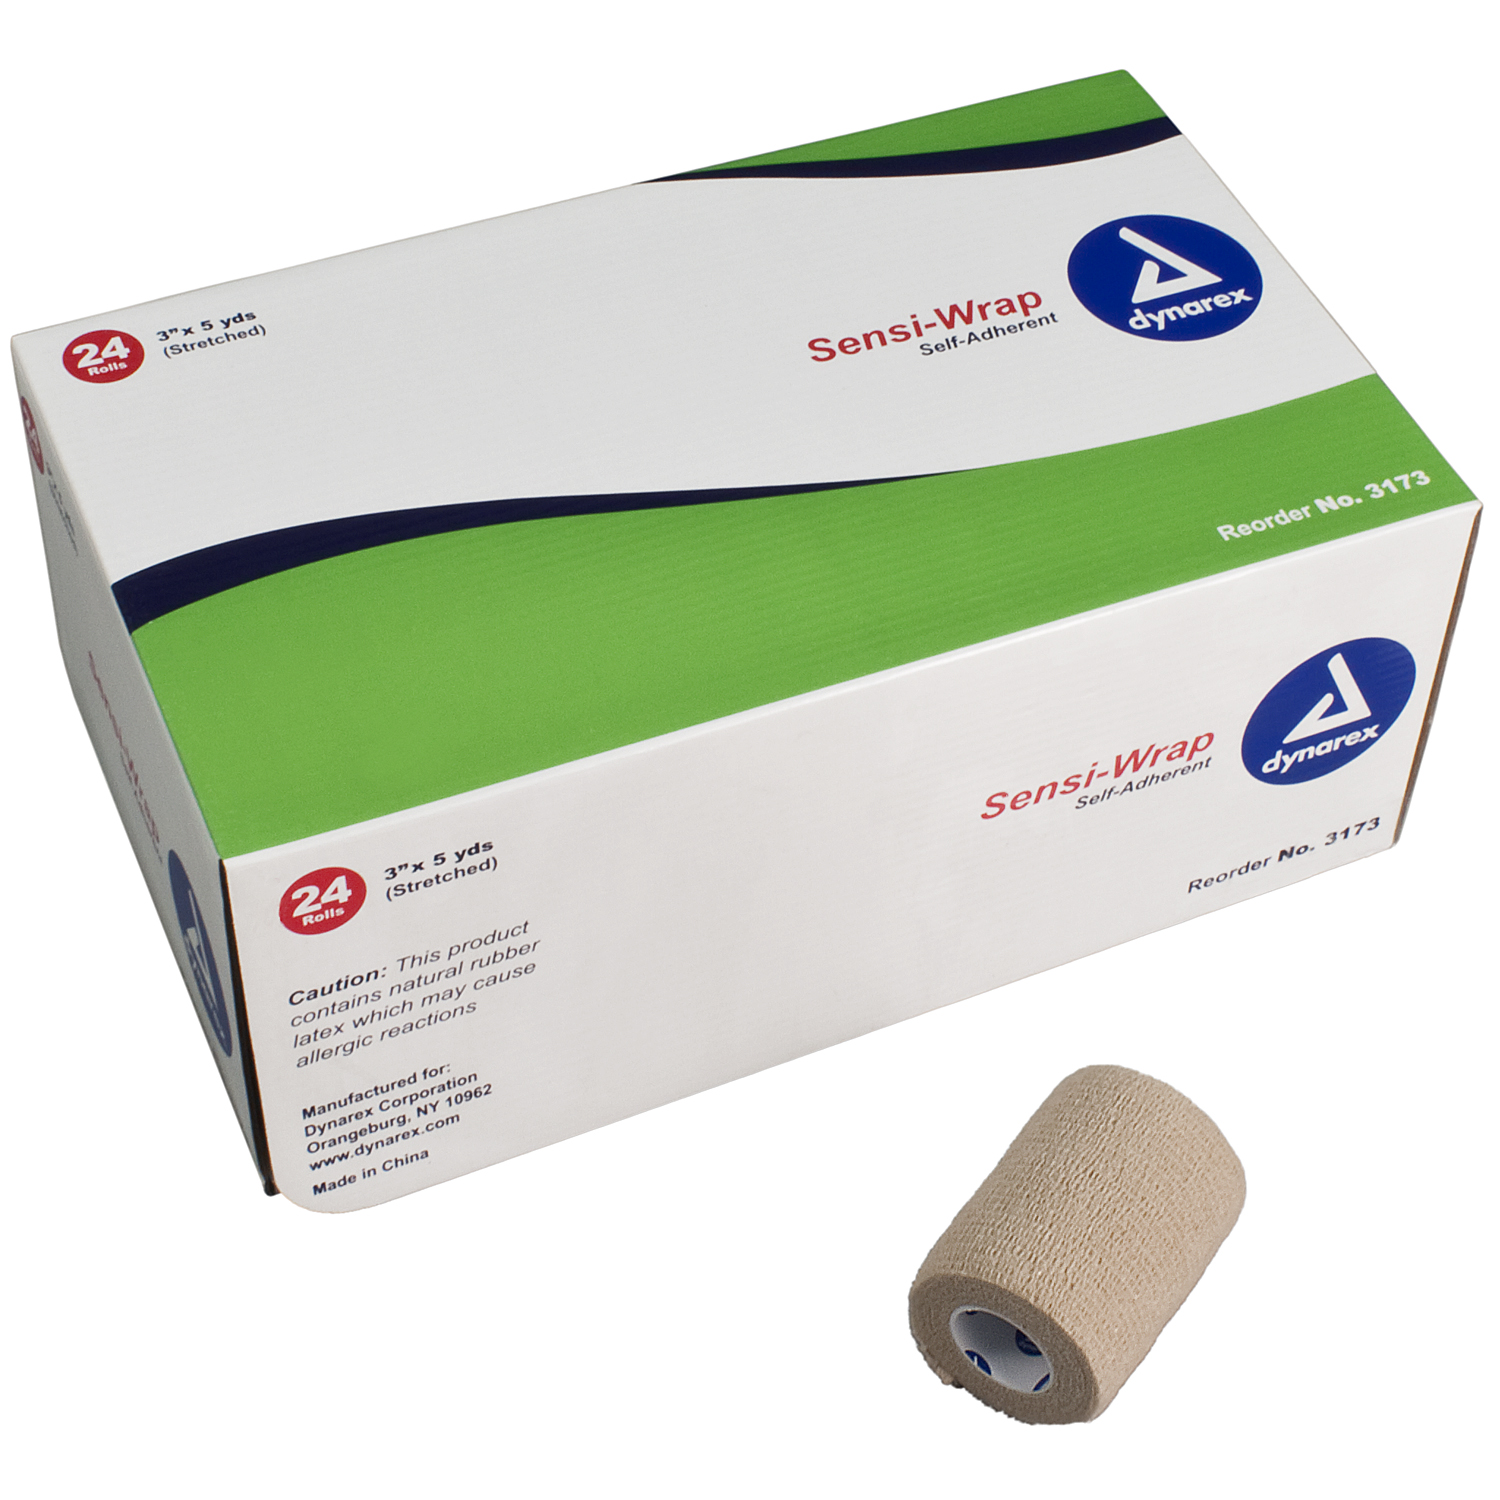 SENSI WRAP SELF-ADHERENT, 3 (COBAN)